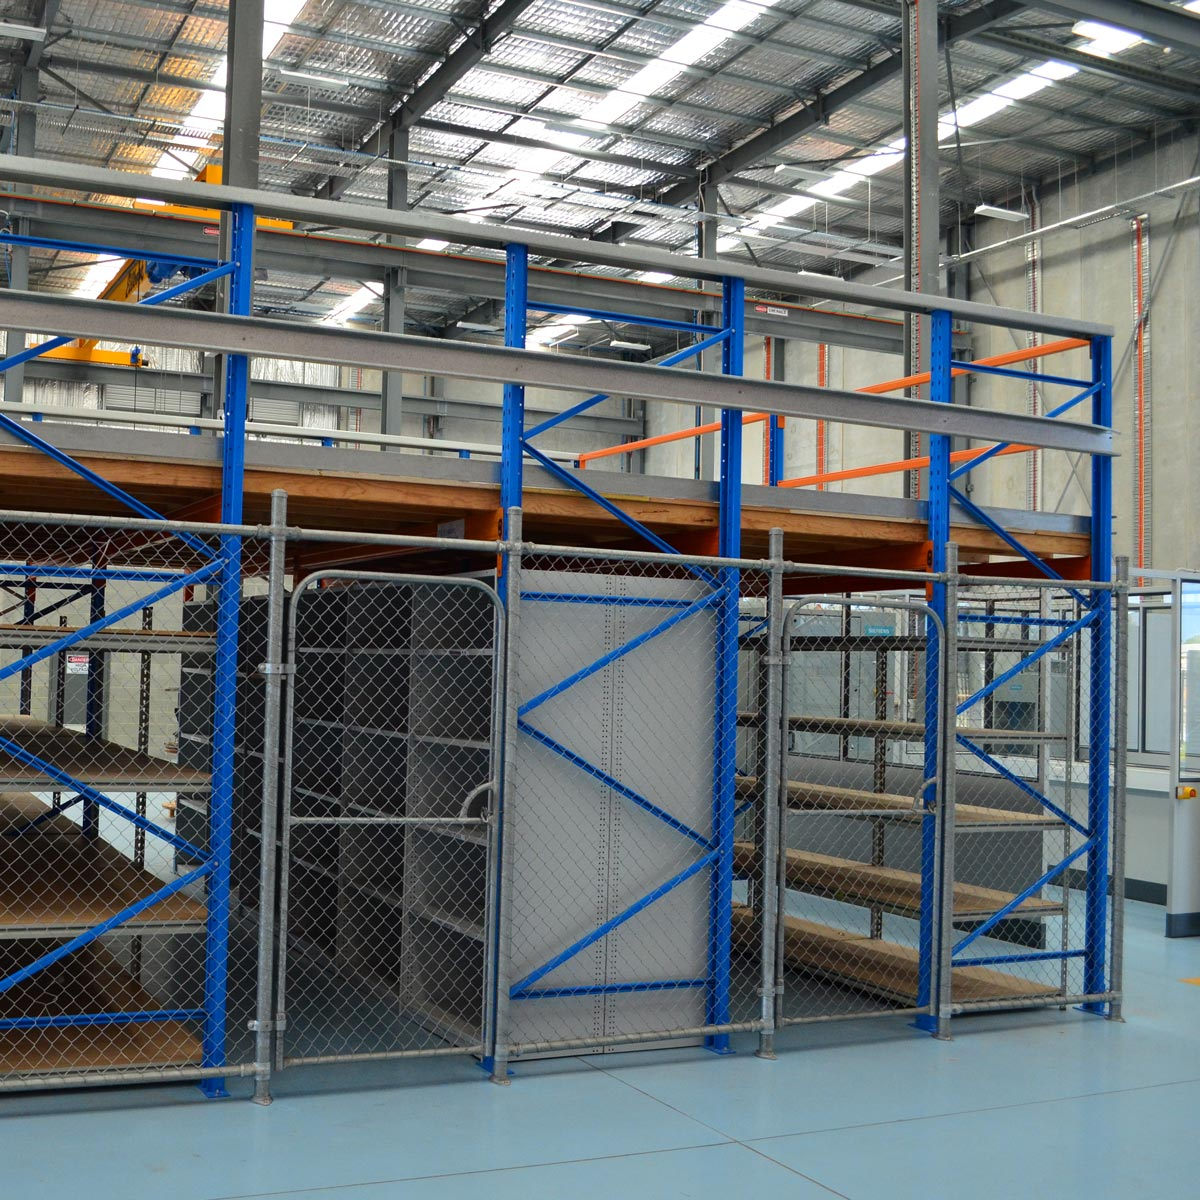 Example of how Racking Type Mezzanine Floors seen from another angle in a warehouse.